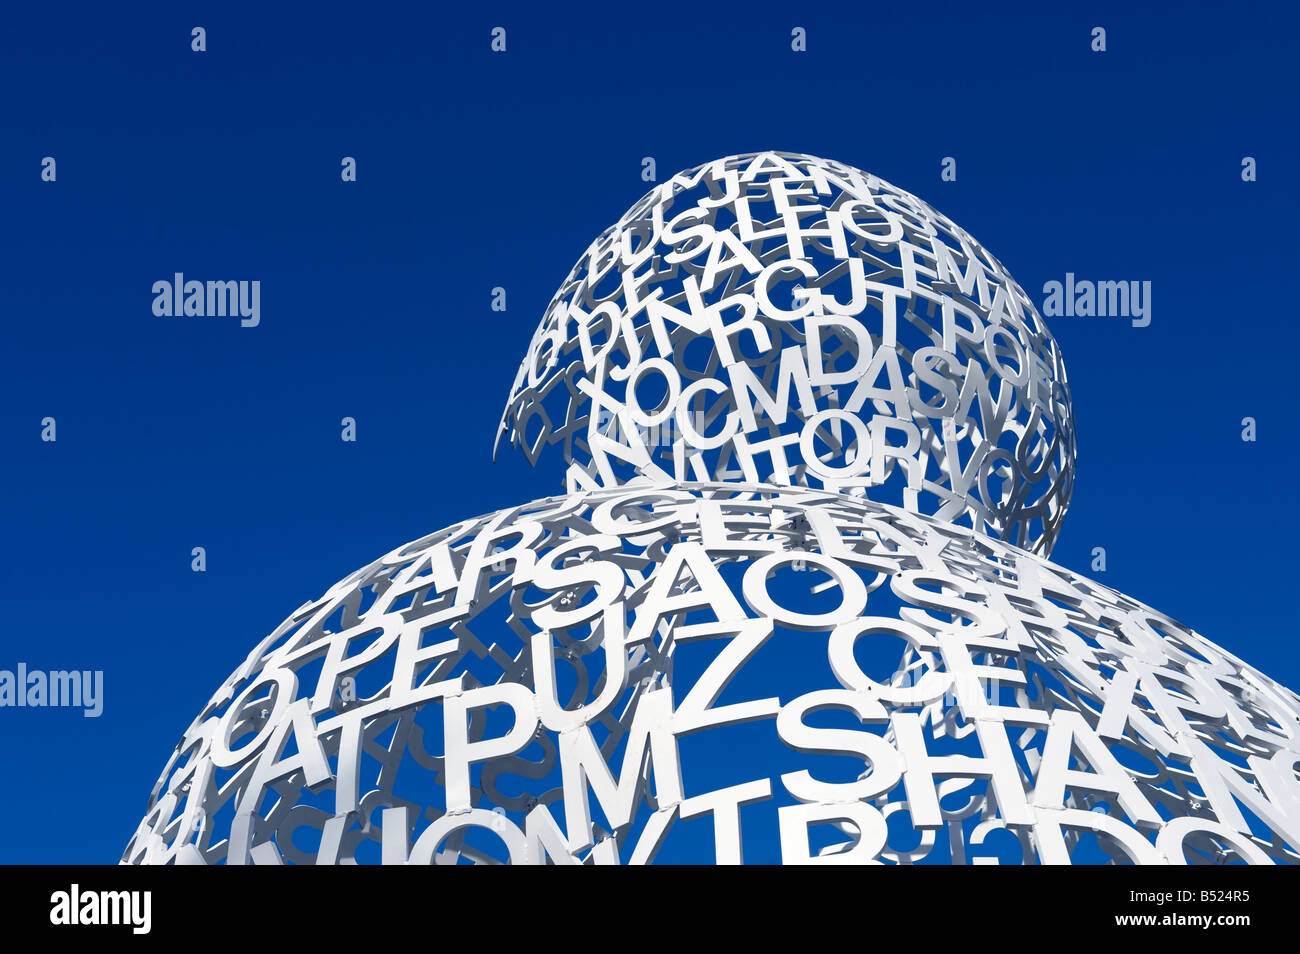 Sculpture made from the letters of the alphabet.  Editorial use only - Stock Image